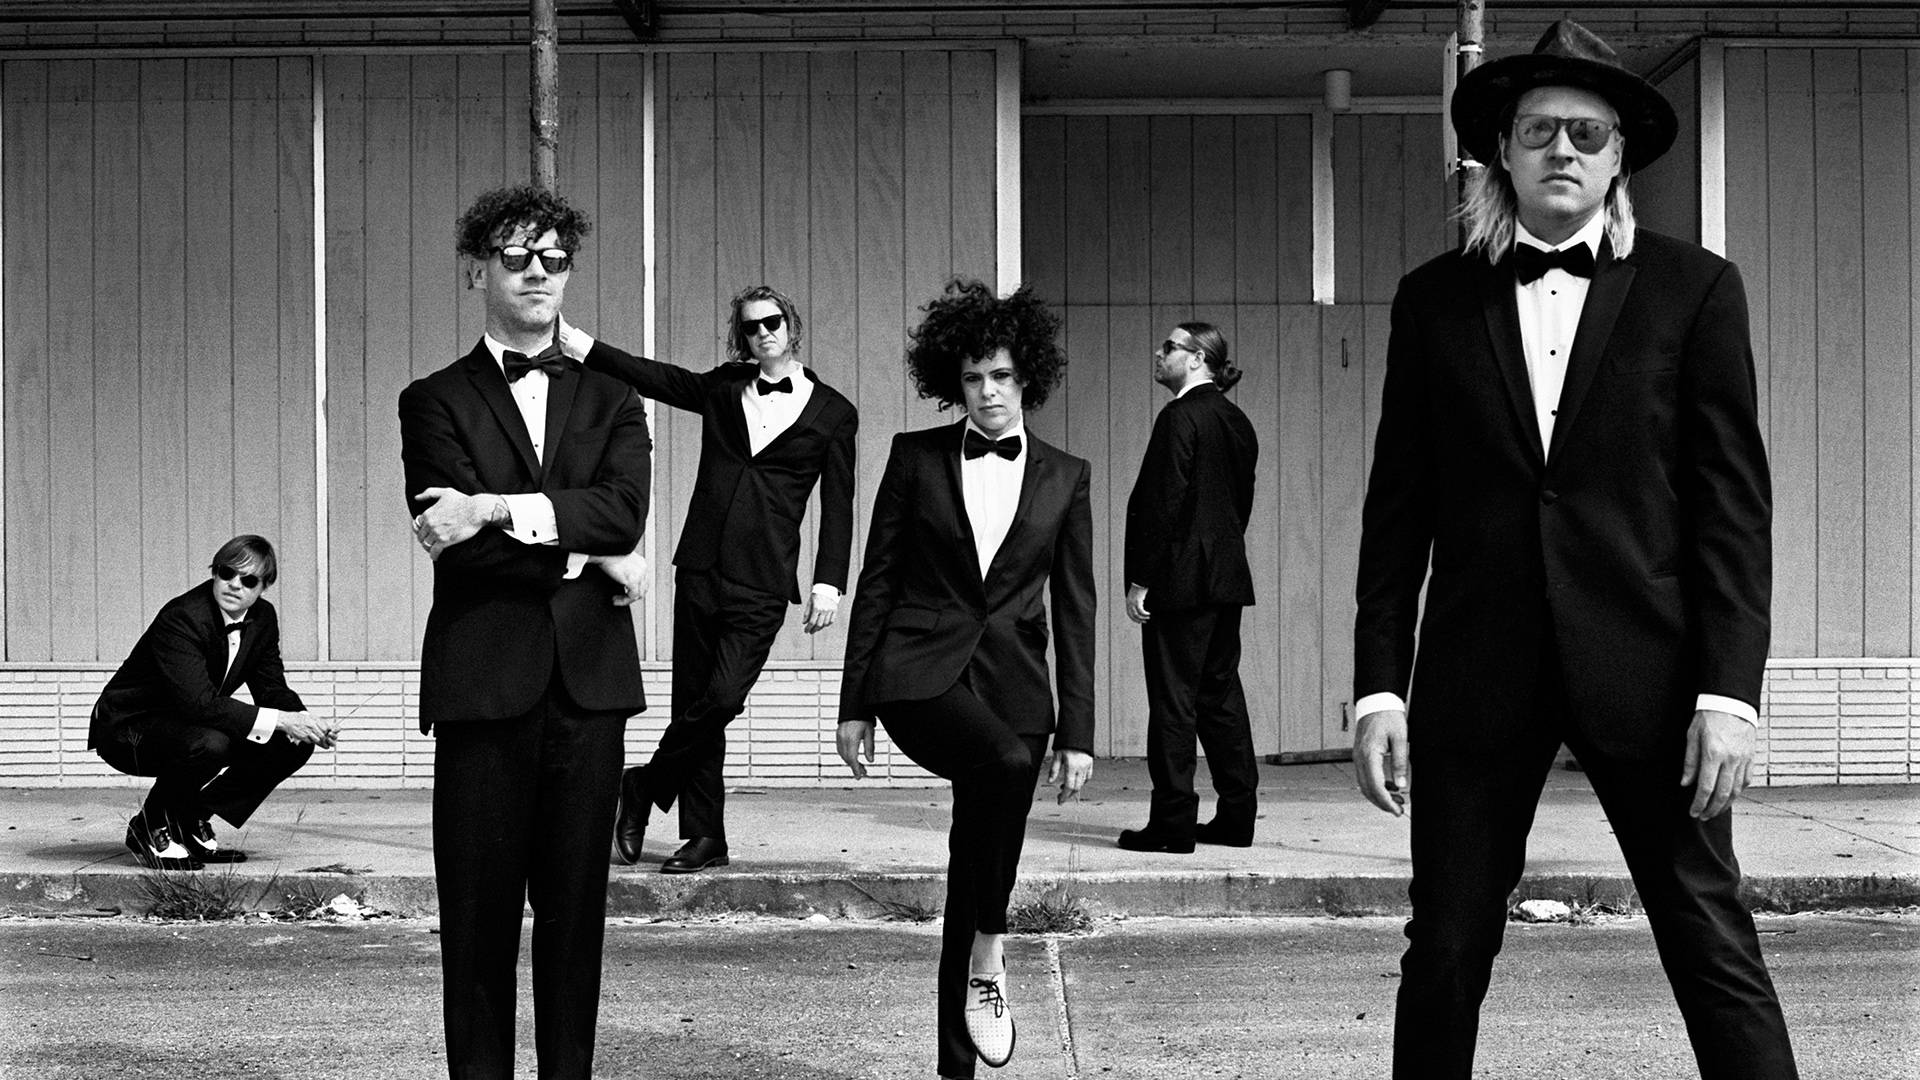 Photo: Arcade Fire press image